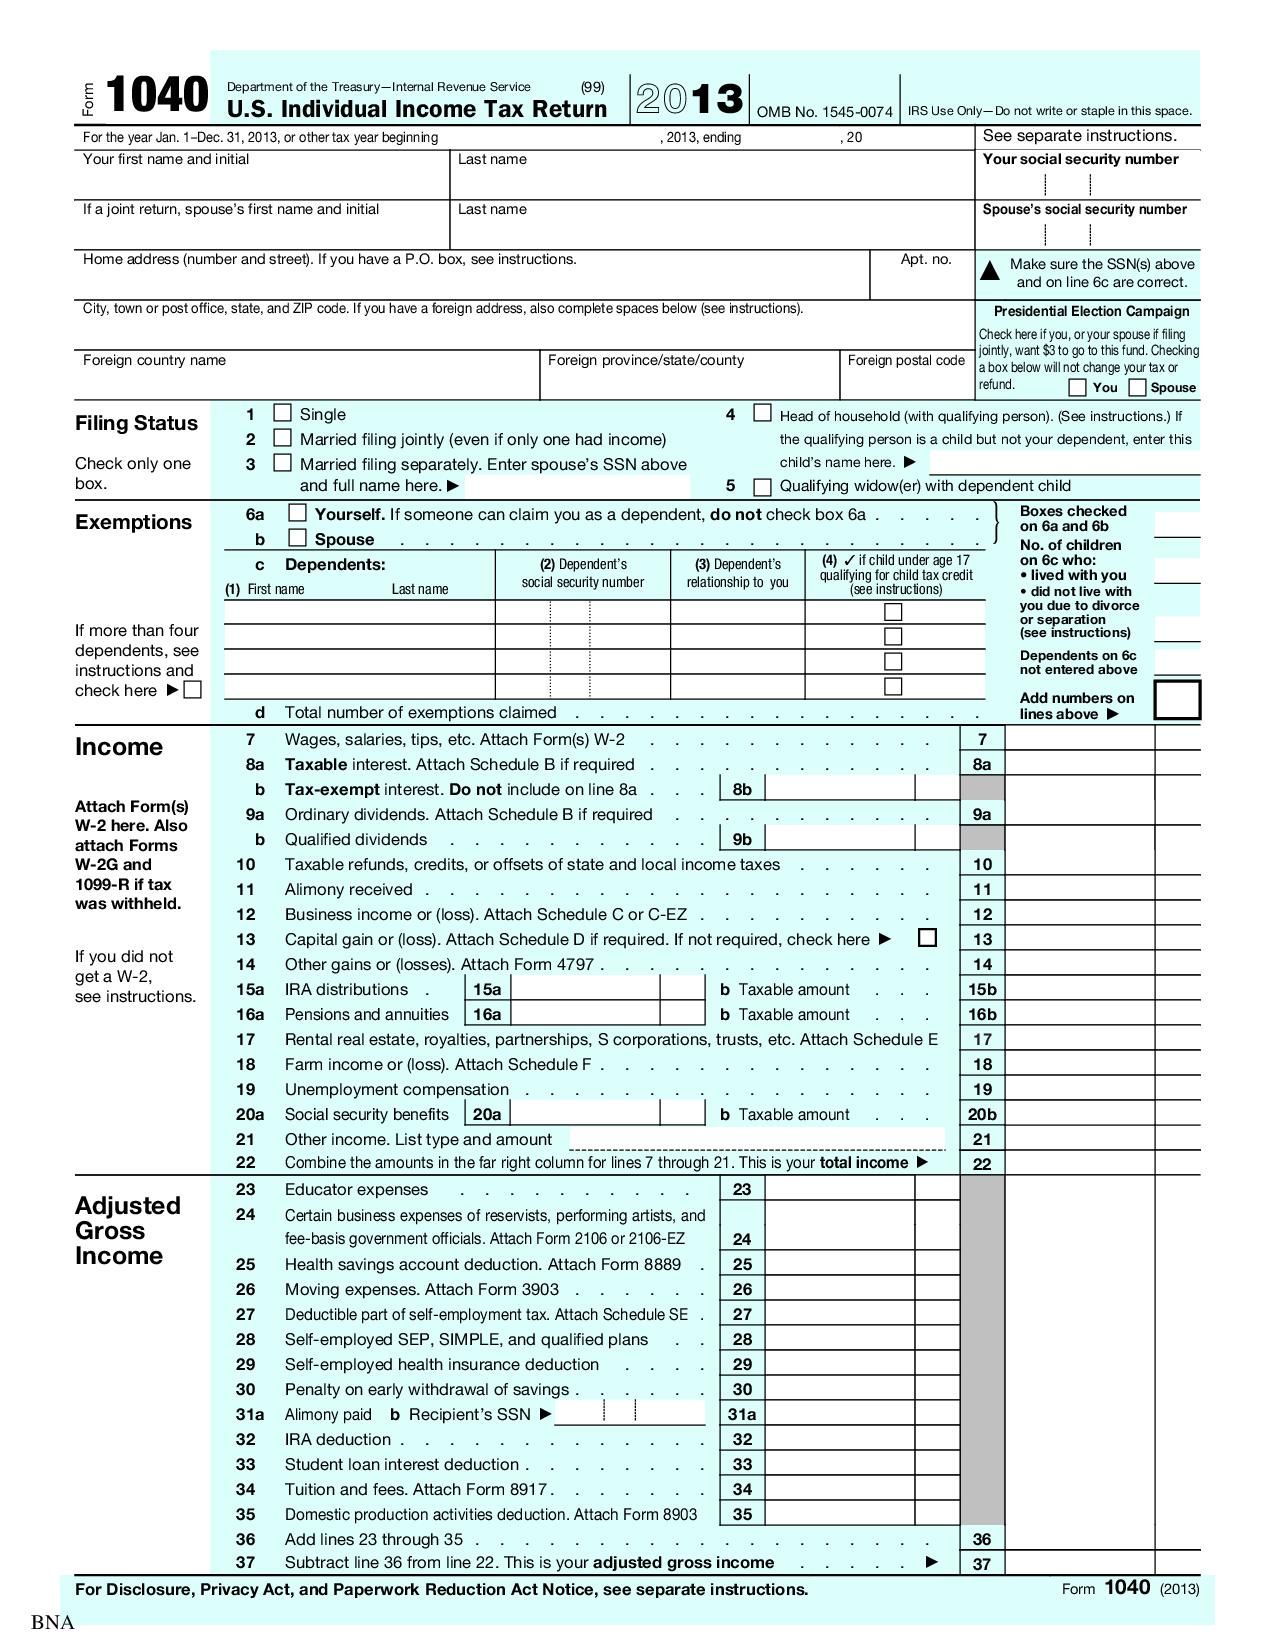 U S Individual Income Tax Return With Schedule E